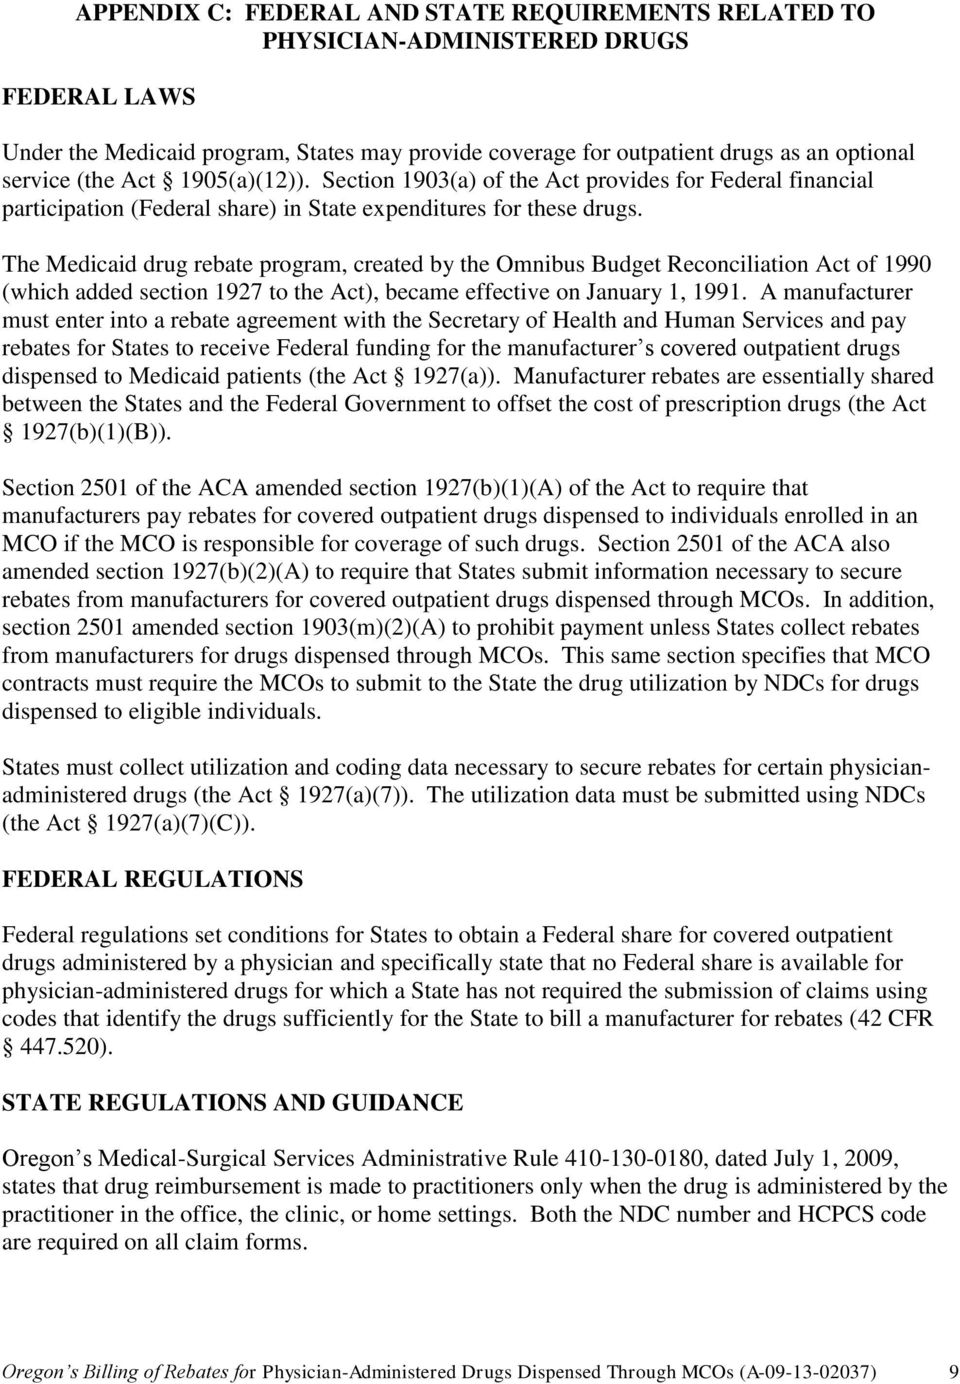 The Medicaid drug rebate program, created by the Omnibus Budget Reconciliation Act of 1990 (which added section 1927 to the Act), became effective on January 1, 1991.